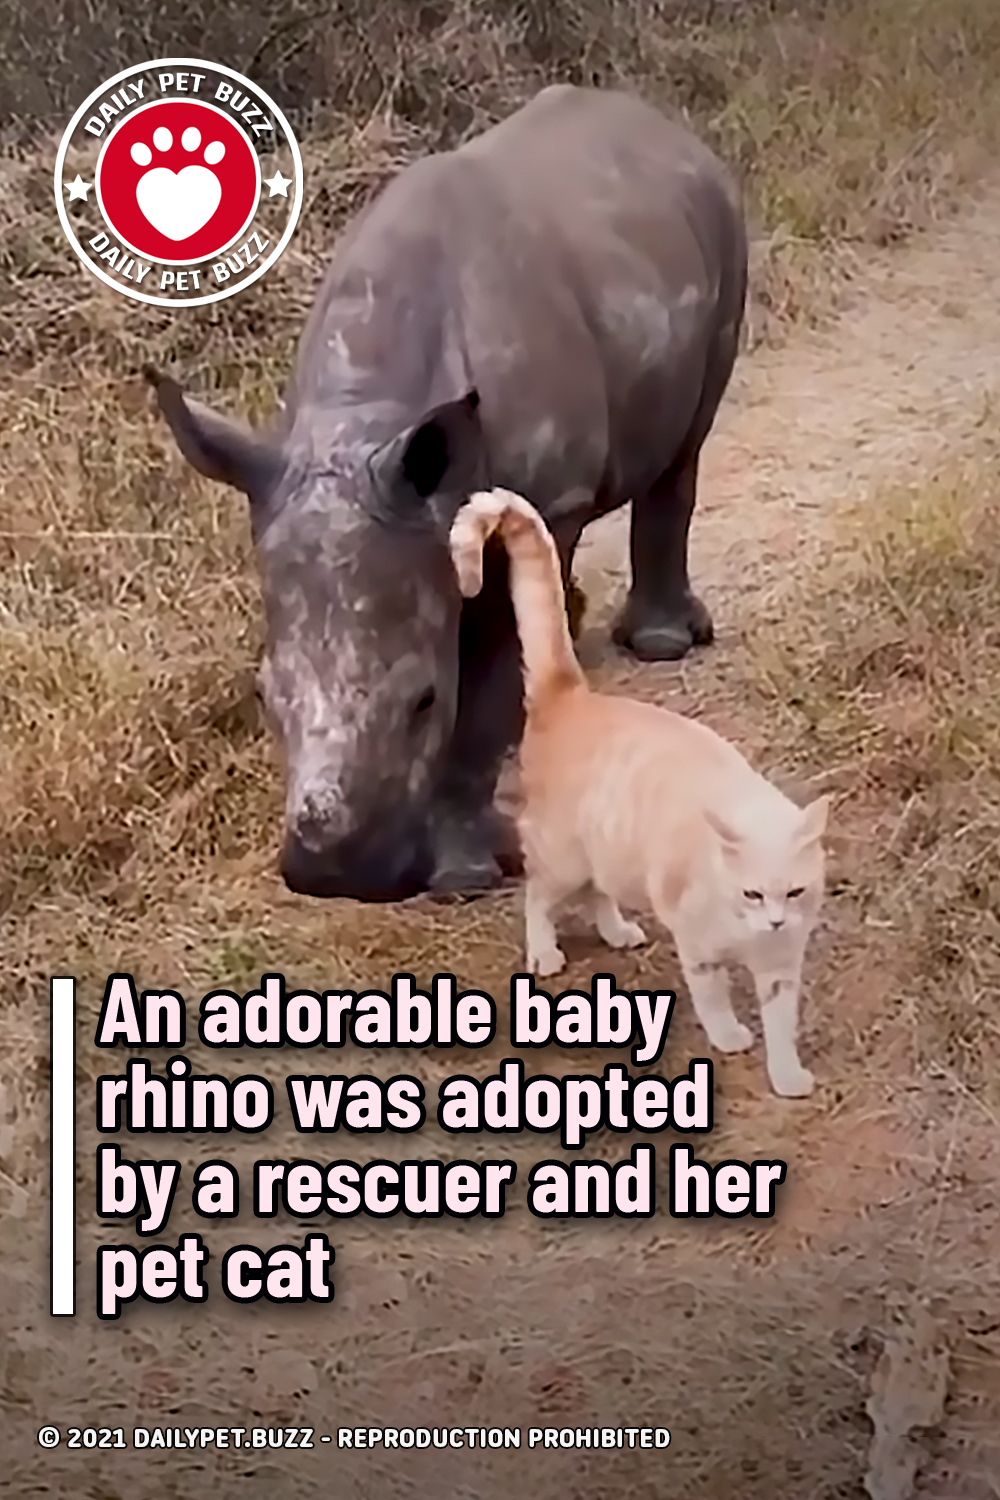 An adorable baby rhino was adopted by a rescuer and her pet cat